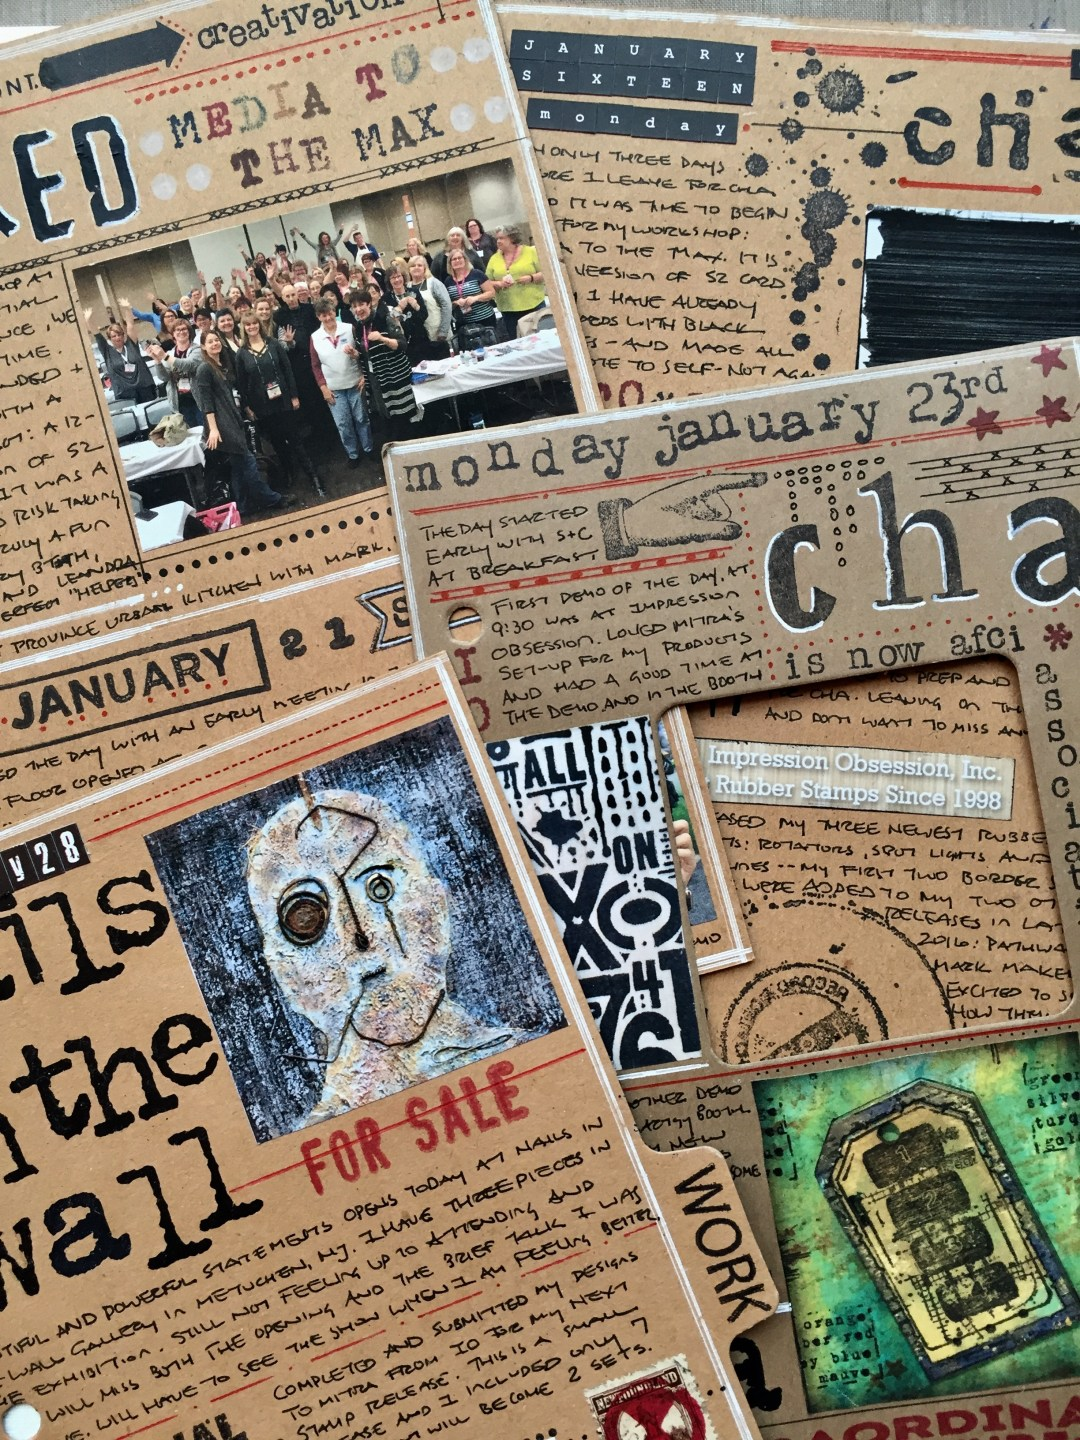 Documenting Life in Art: Mixed-Media Art Journal Planner Image 7